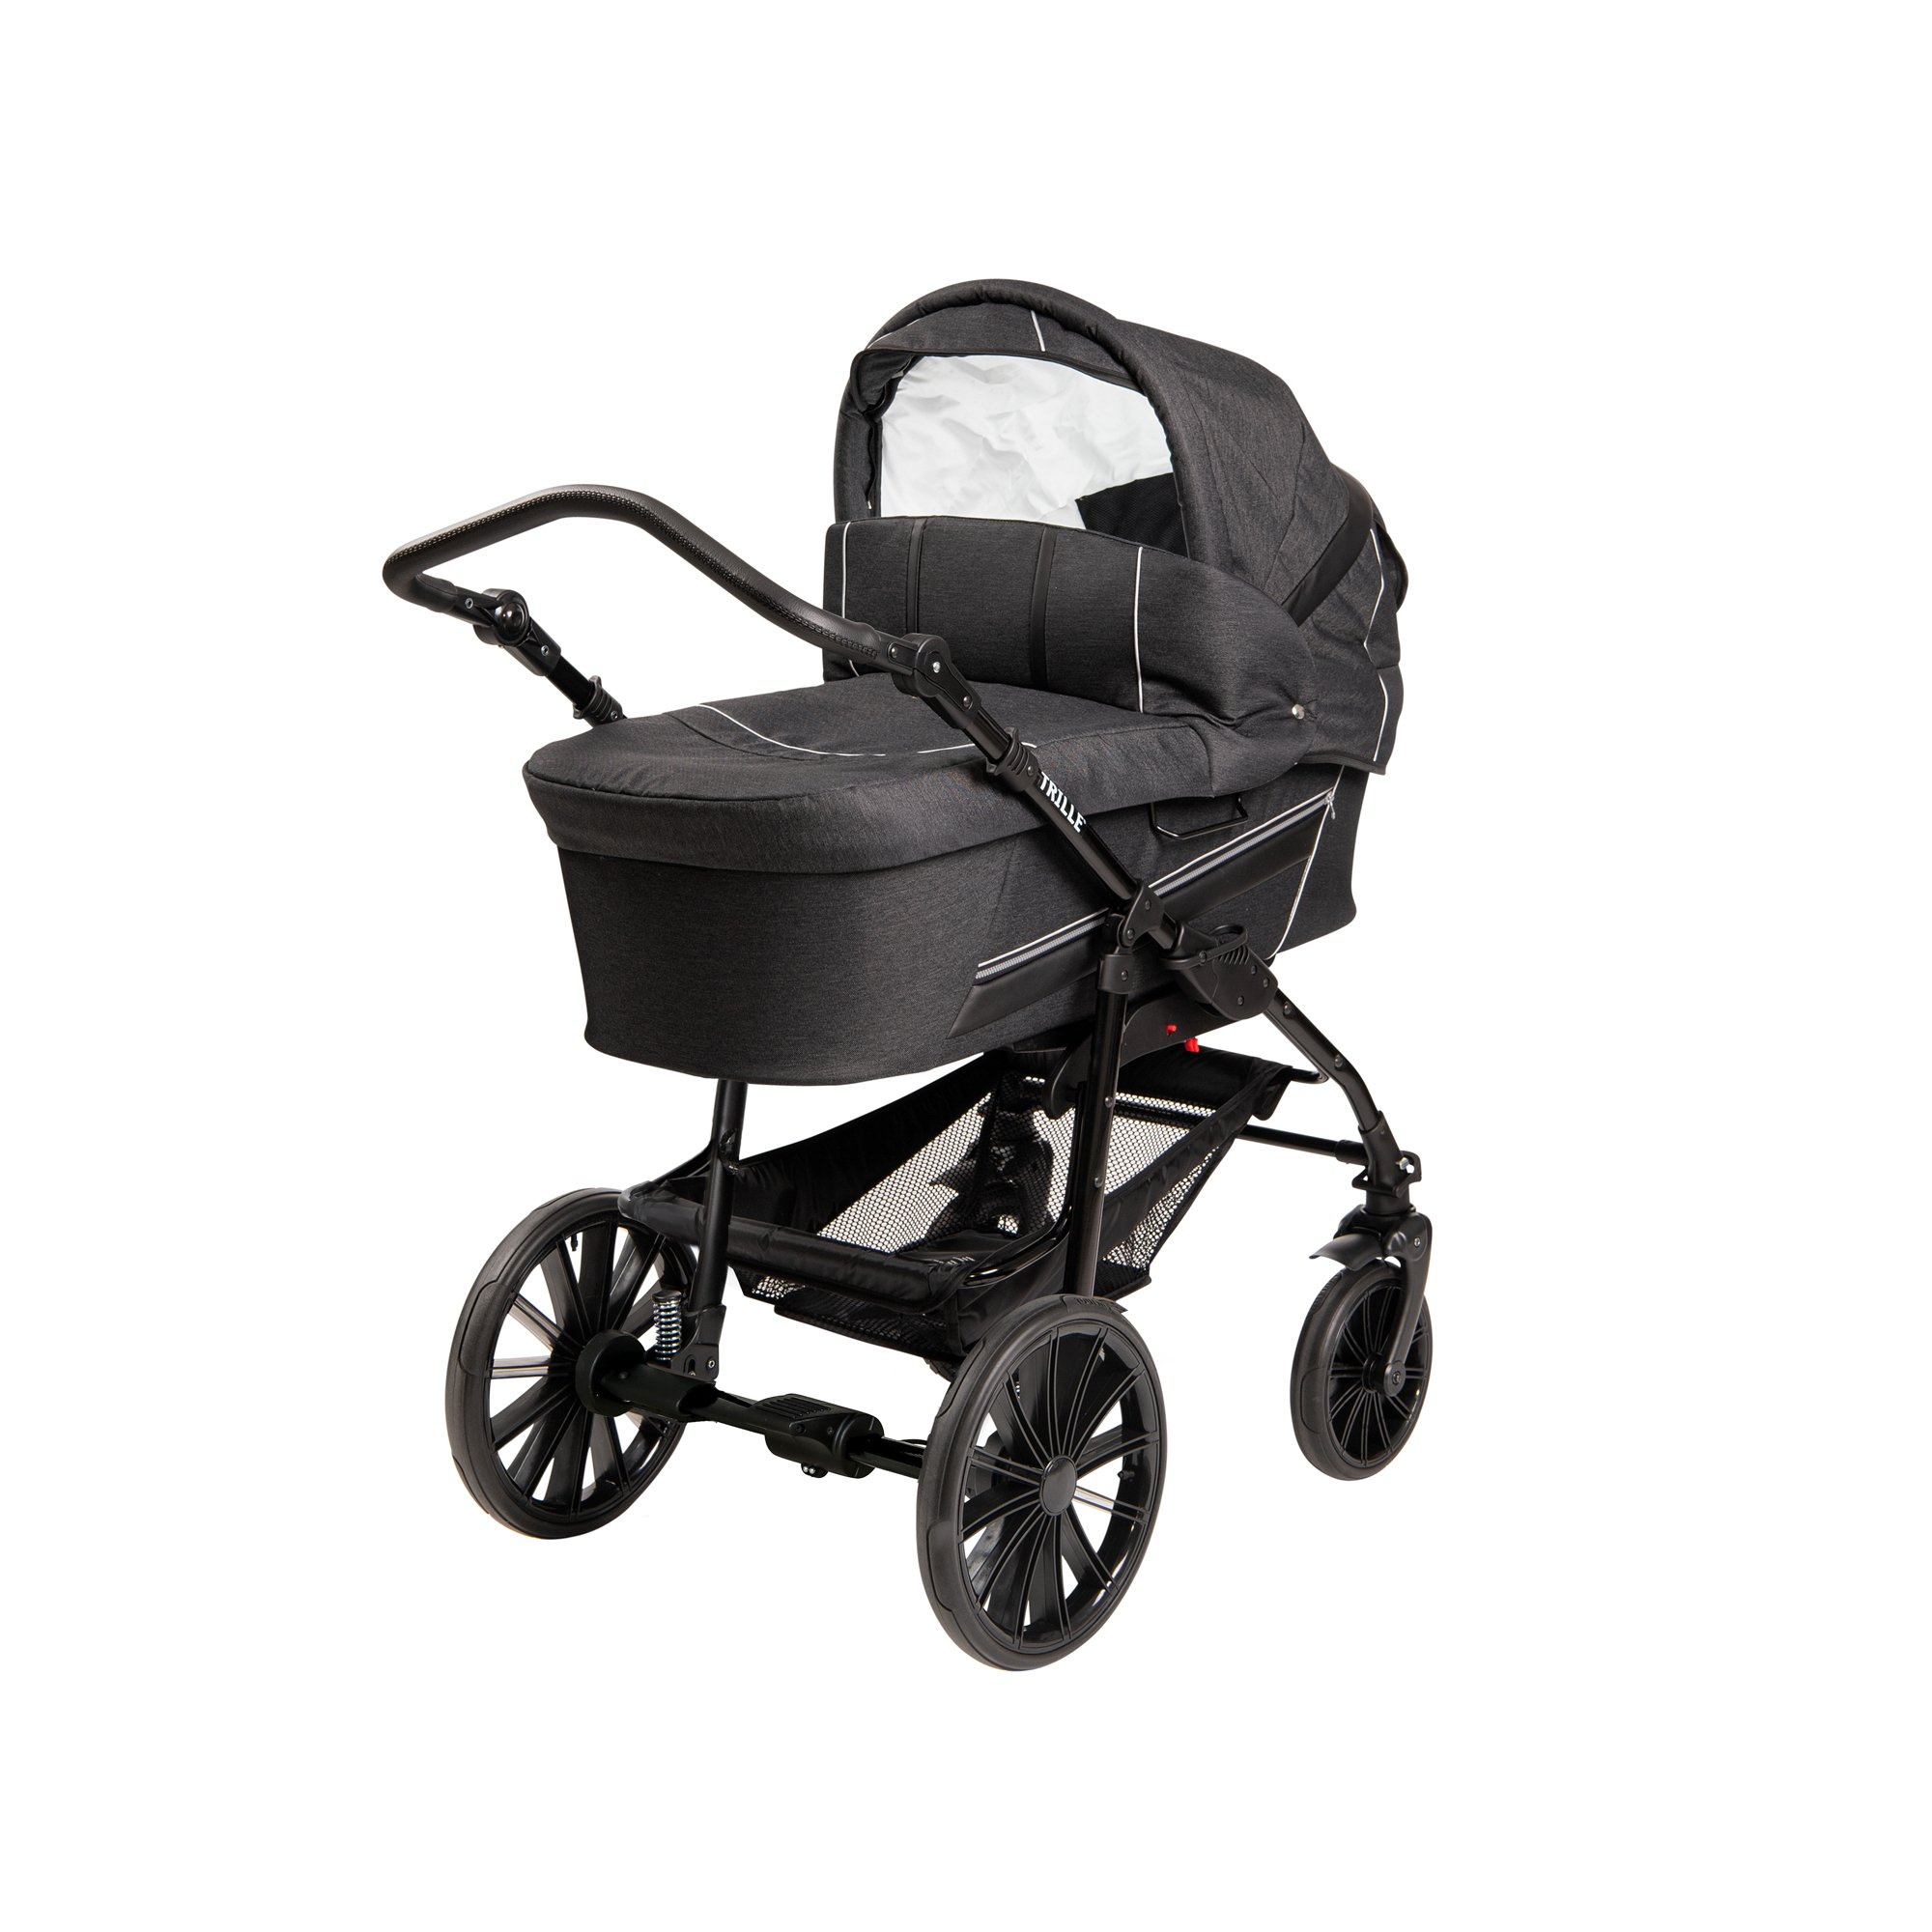 TRILLE - Dream Light Pram - Black Alligator